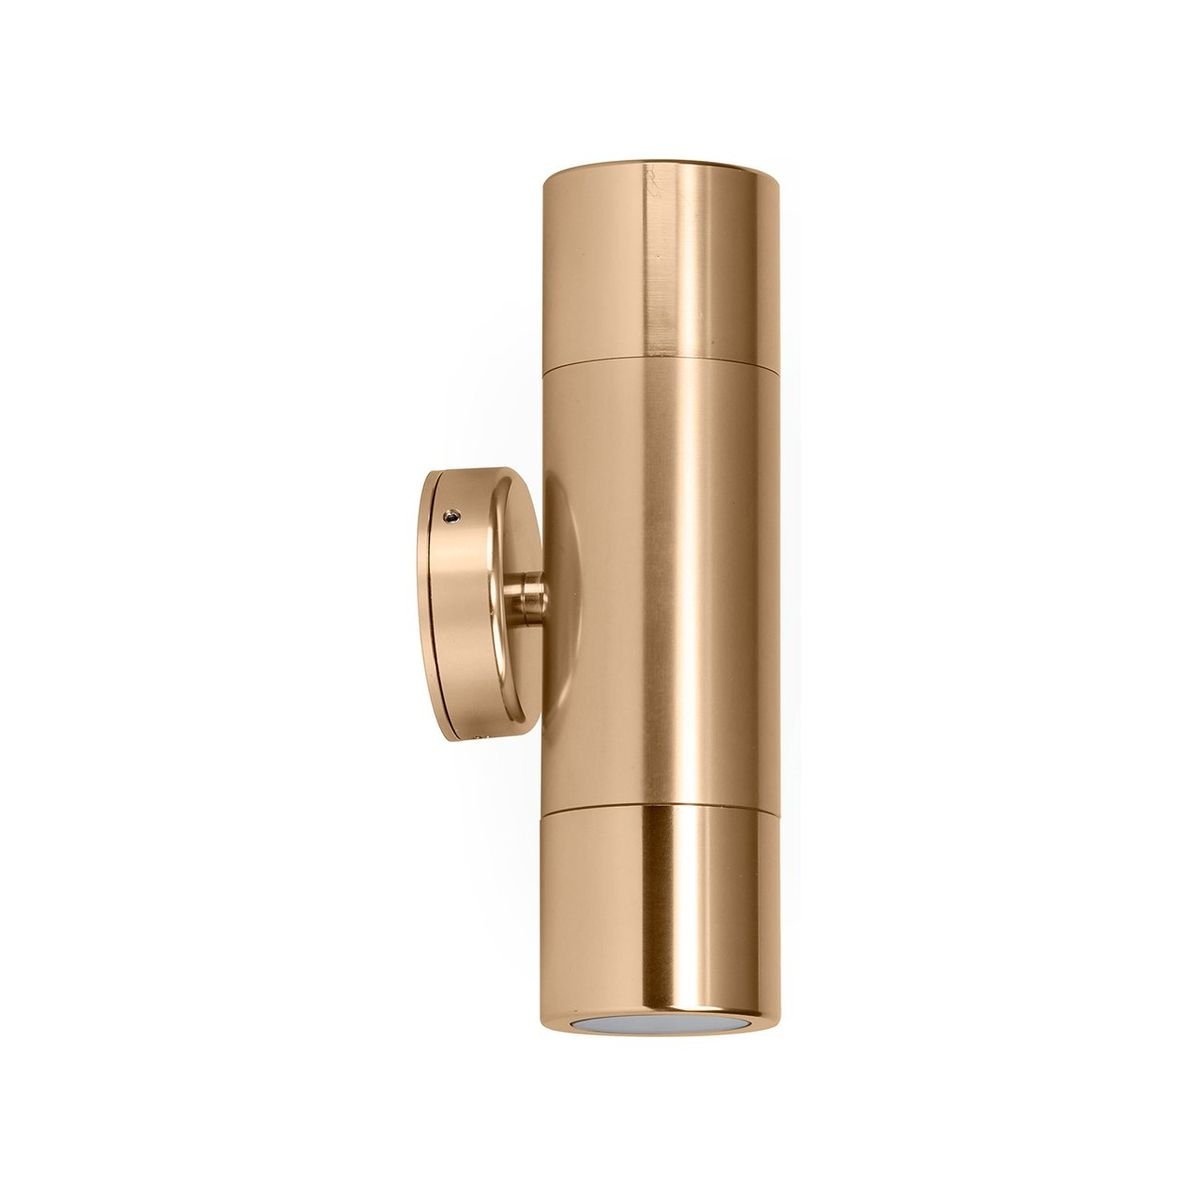 HV1056 - Tivah Gold Up & Down Wall Pillar Light – Bild 1